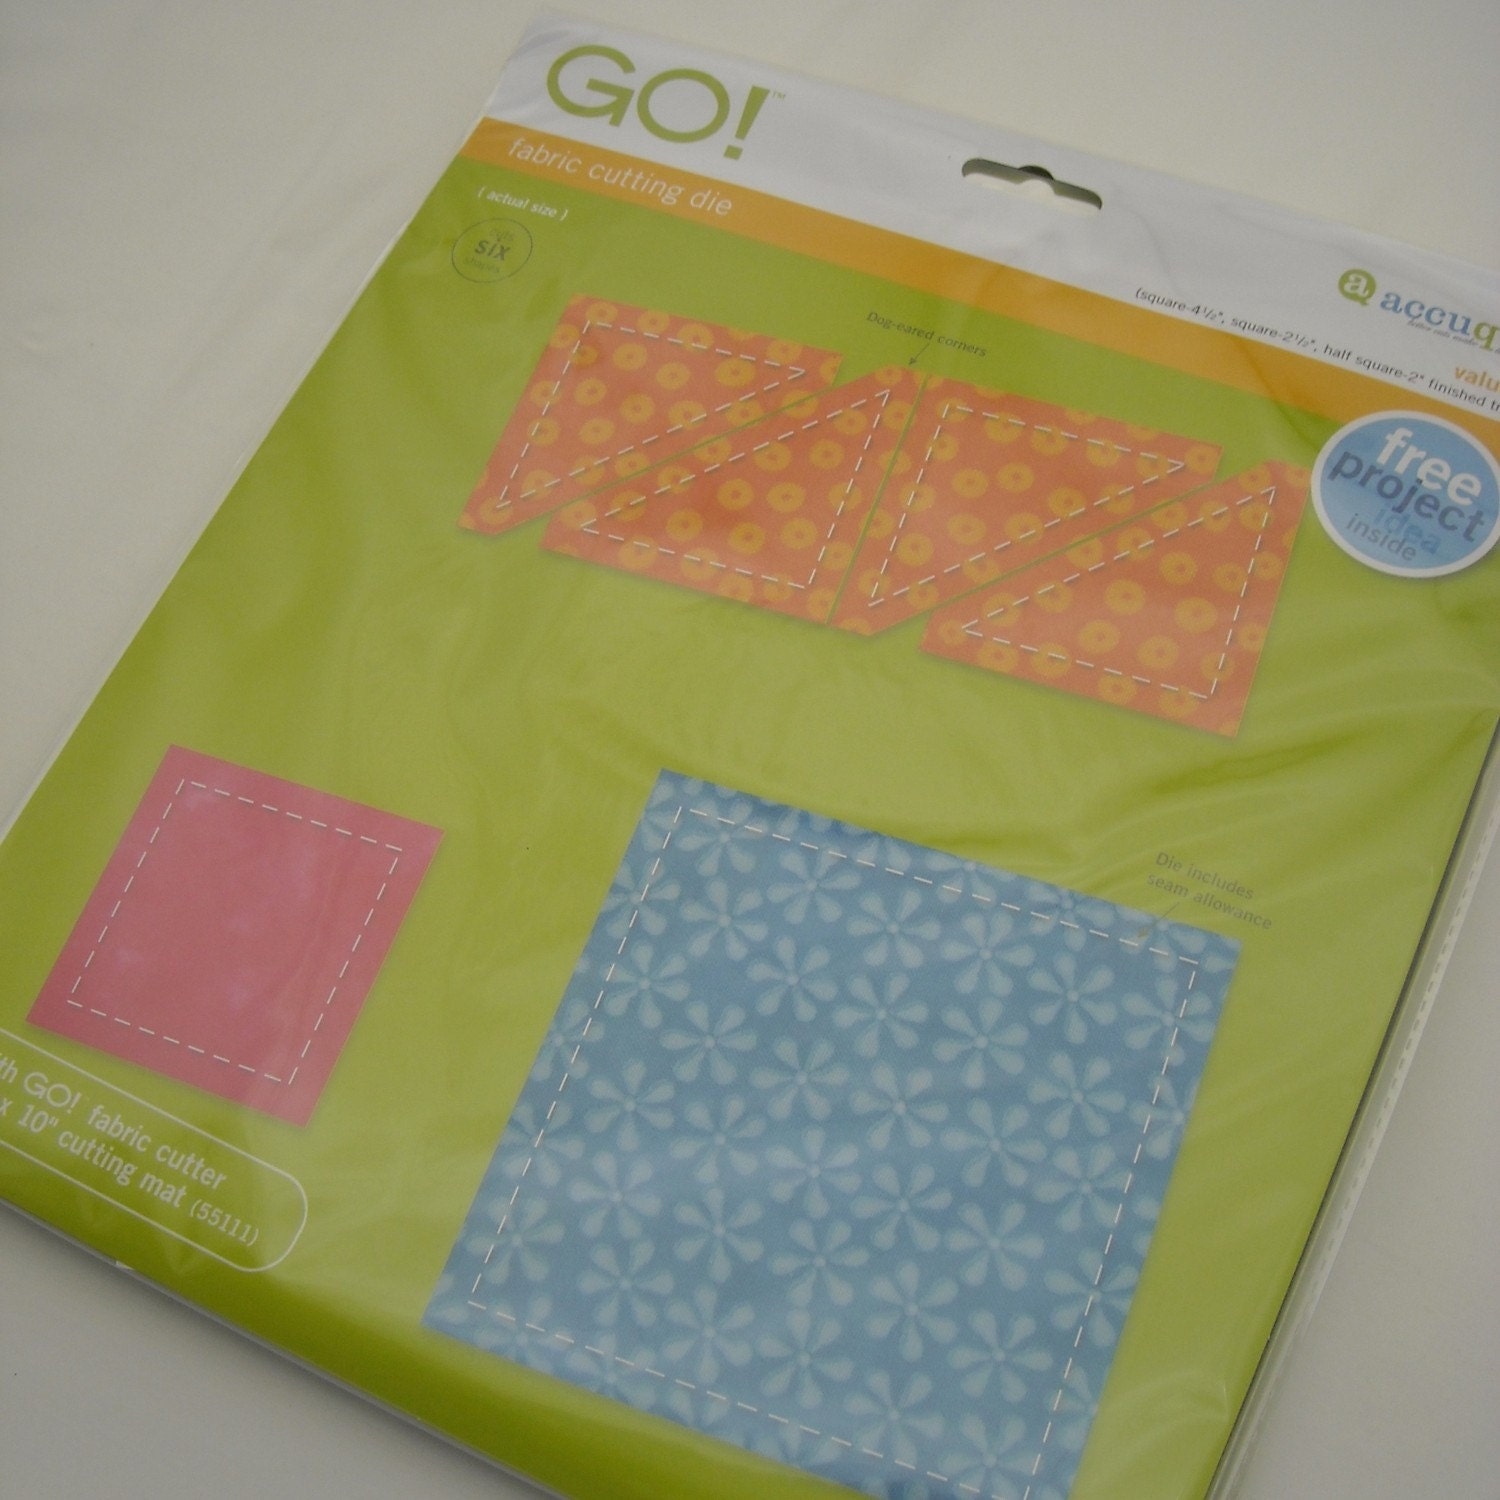 Clearance Sale Accuquilt Go Value Die 6 By Fabricfascination